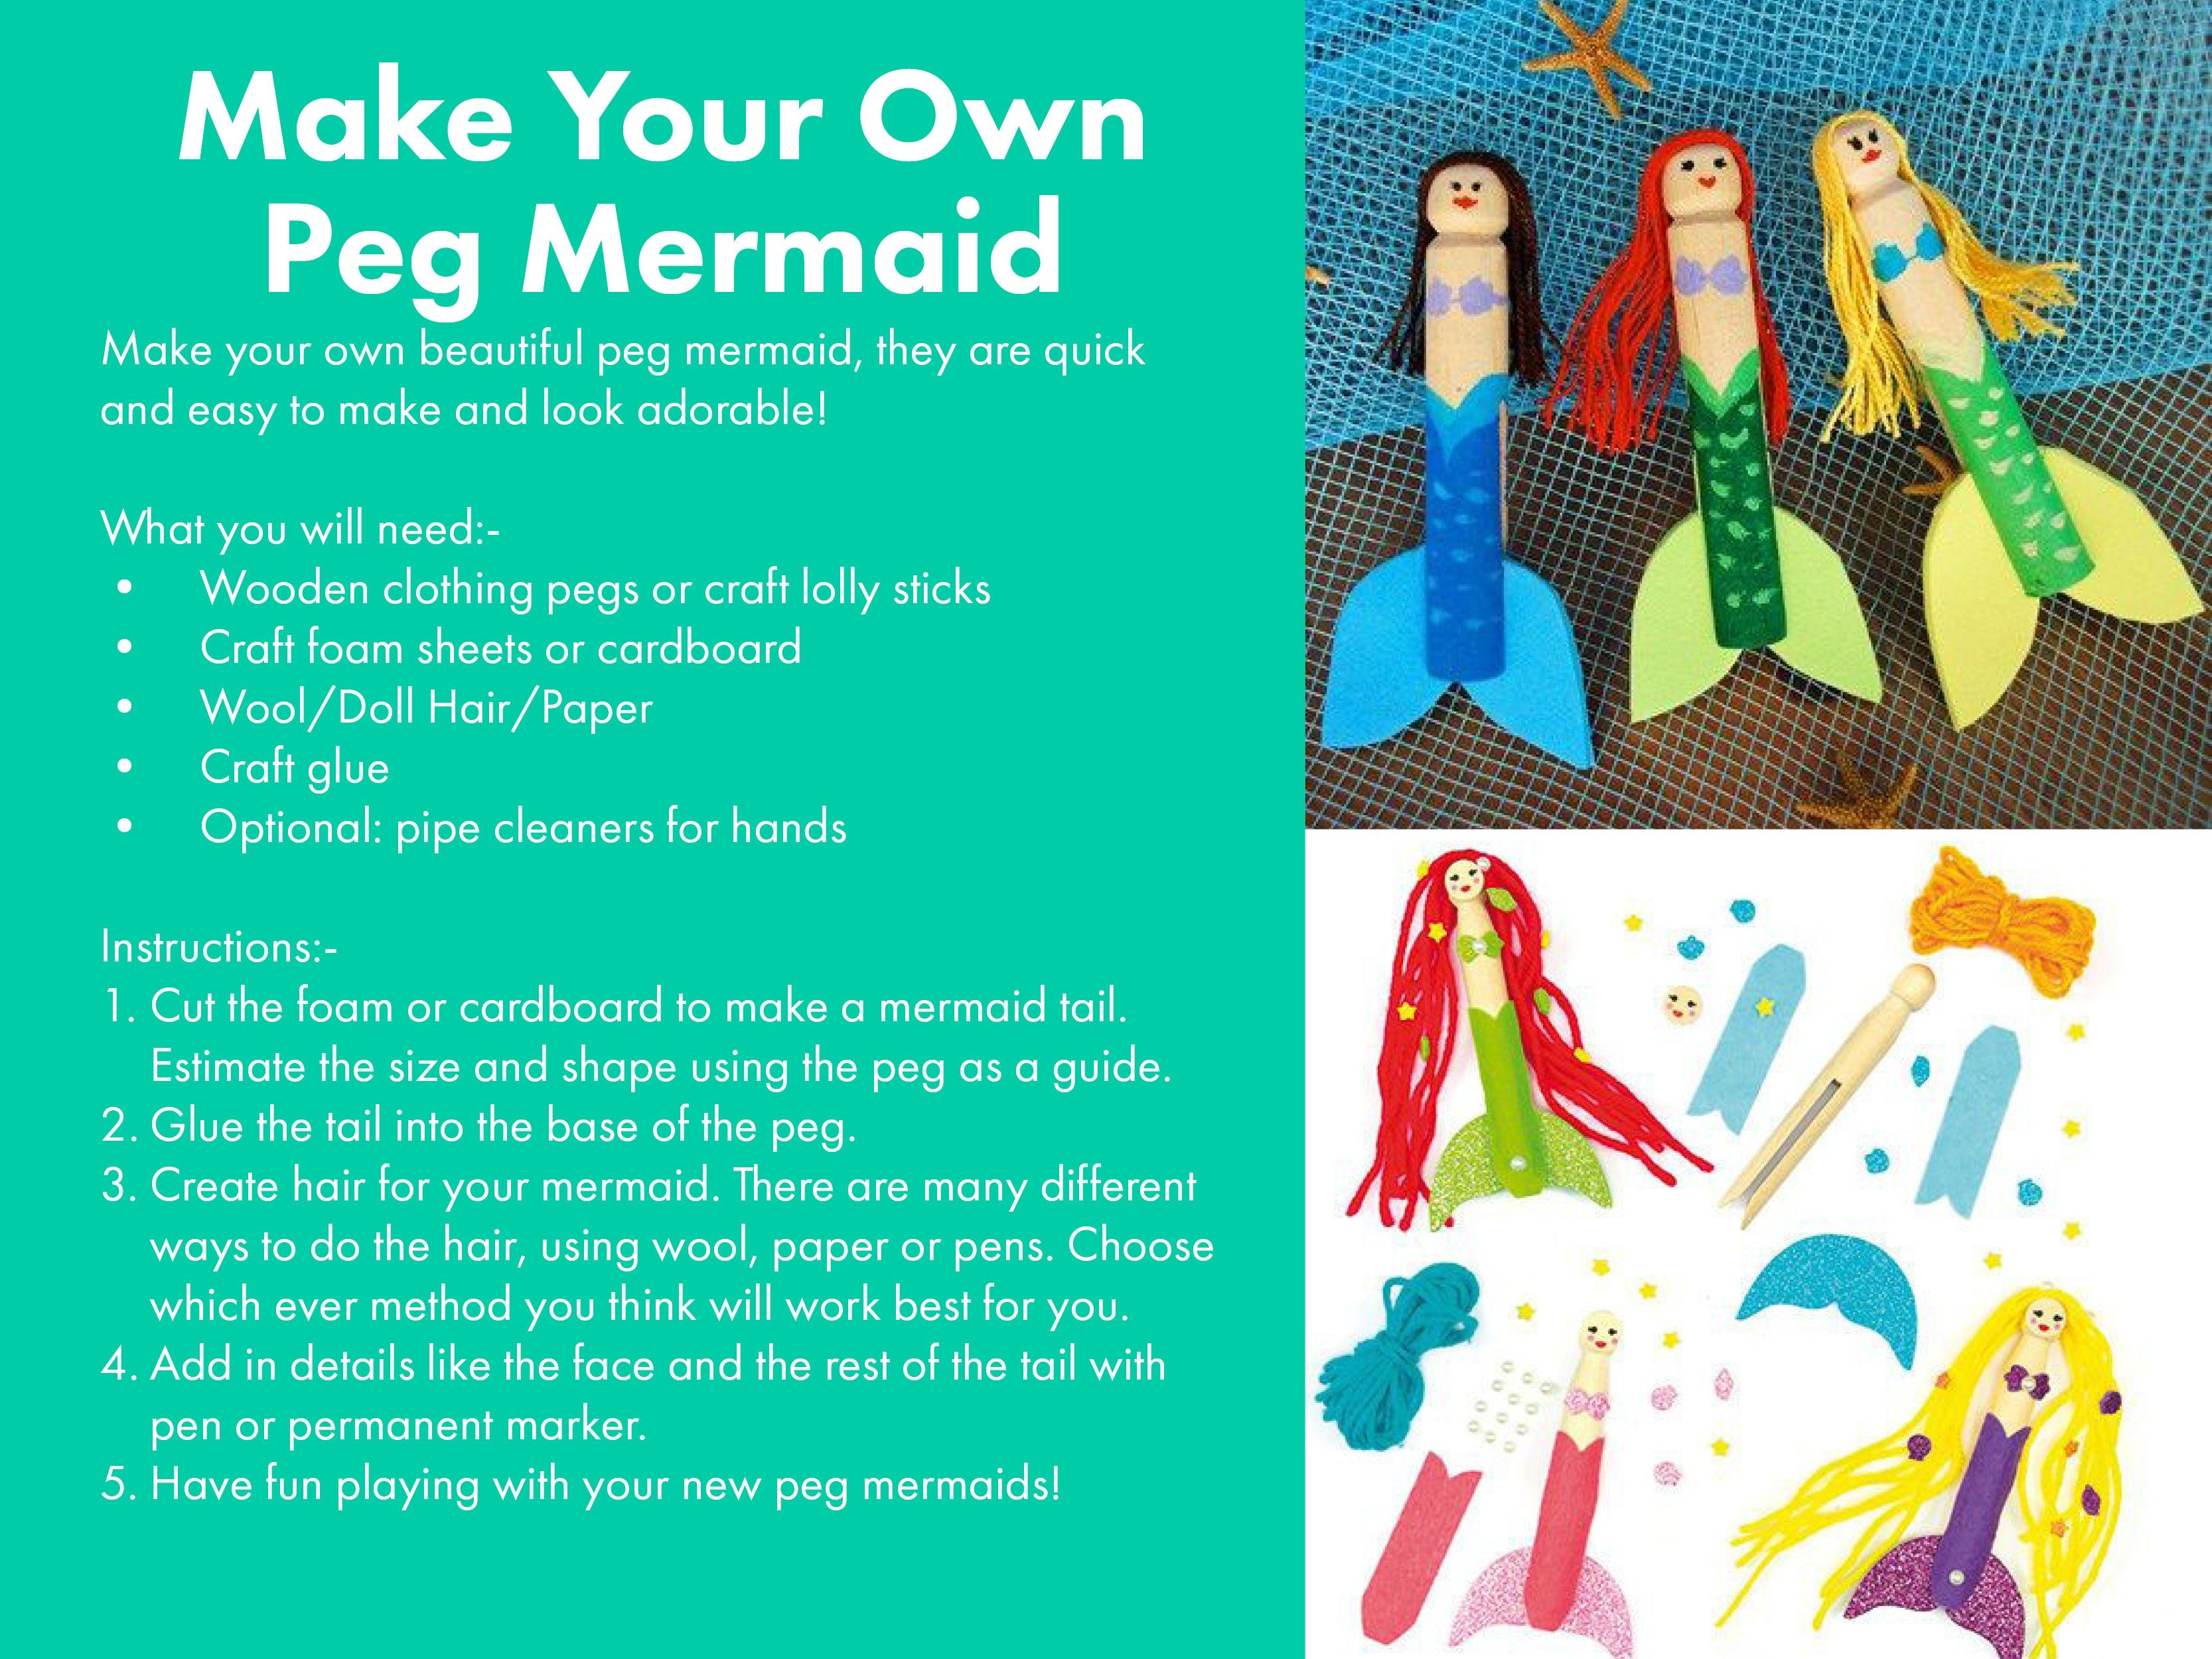 Make Your Own Peg Mermaid